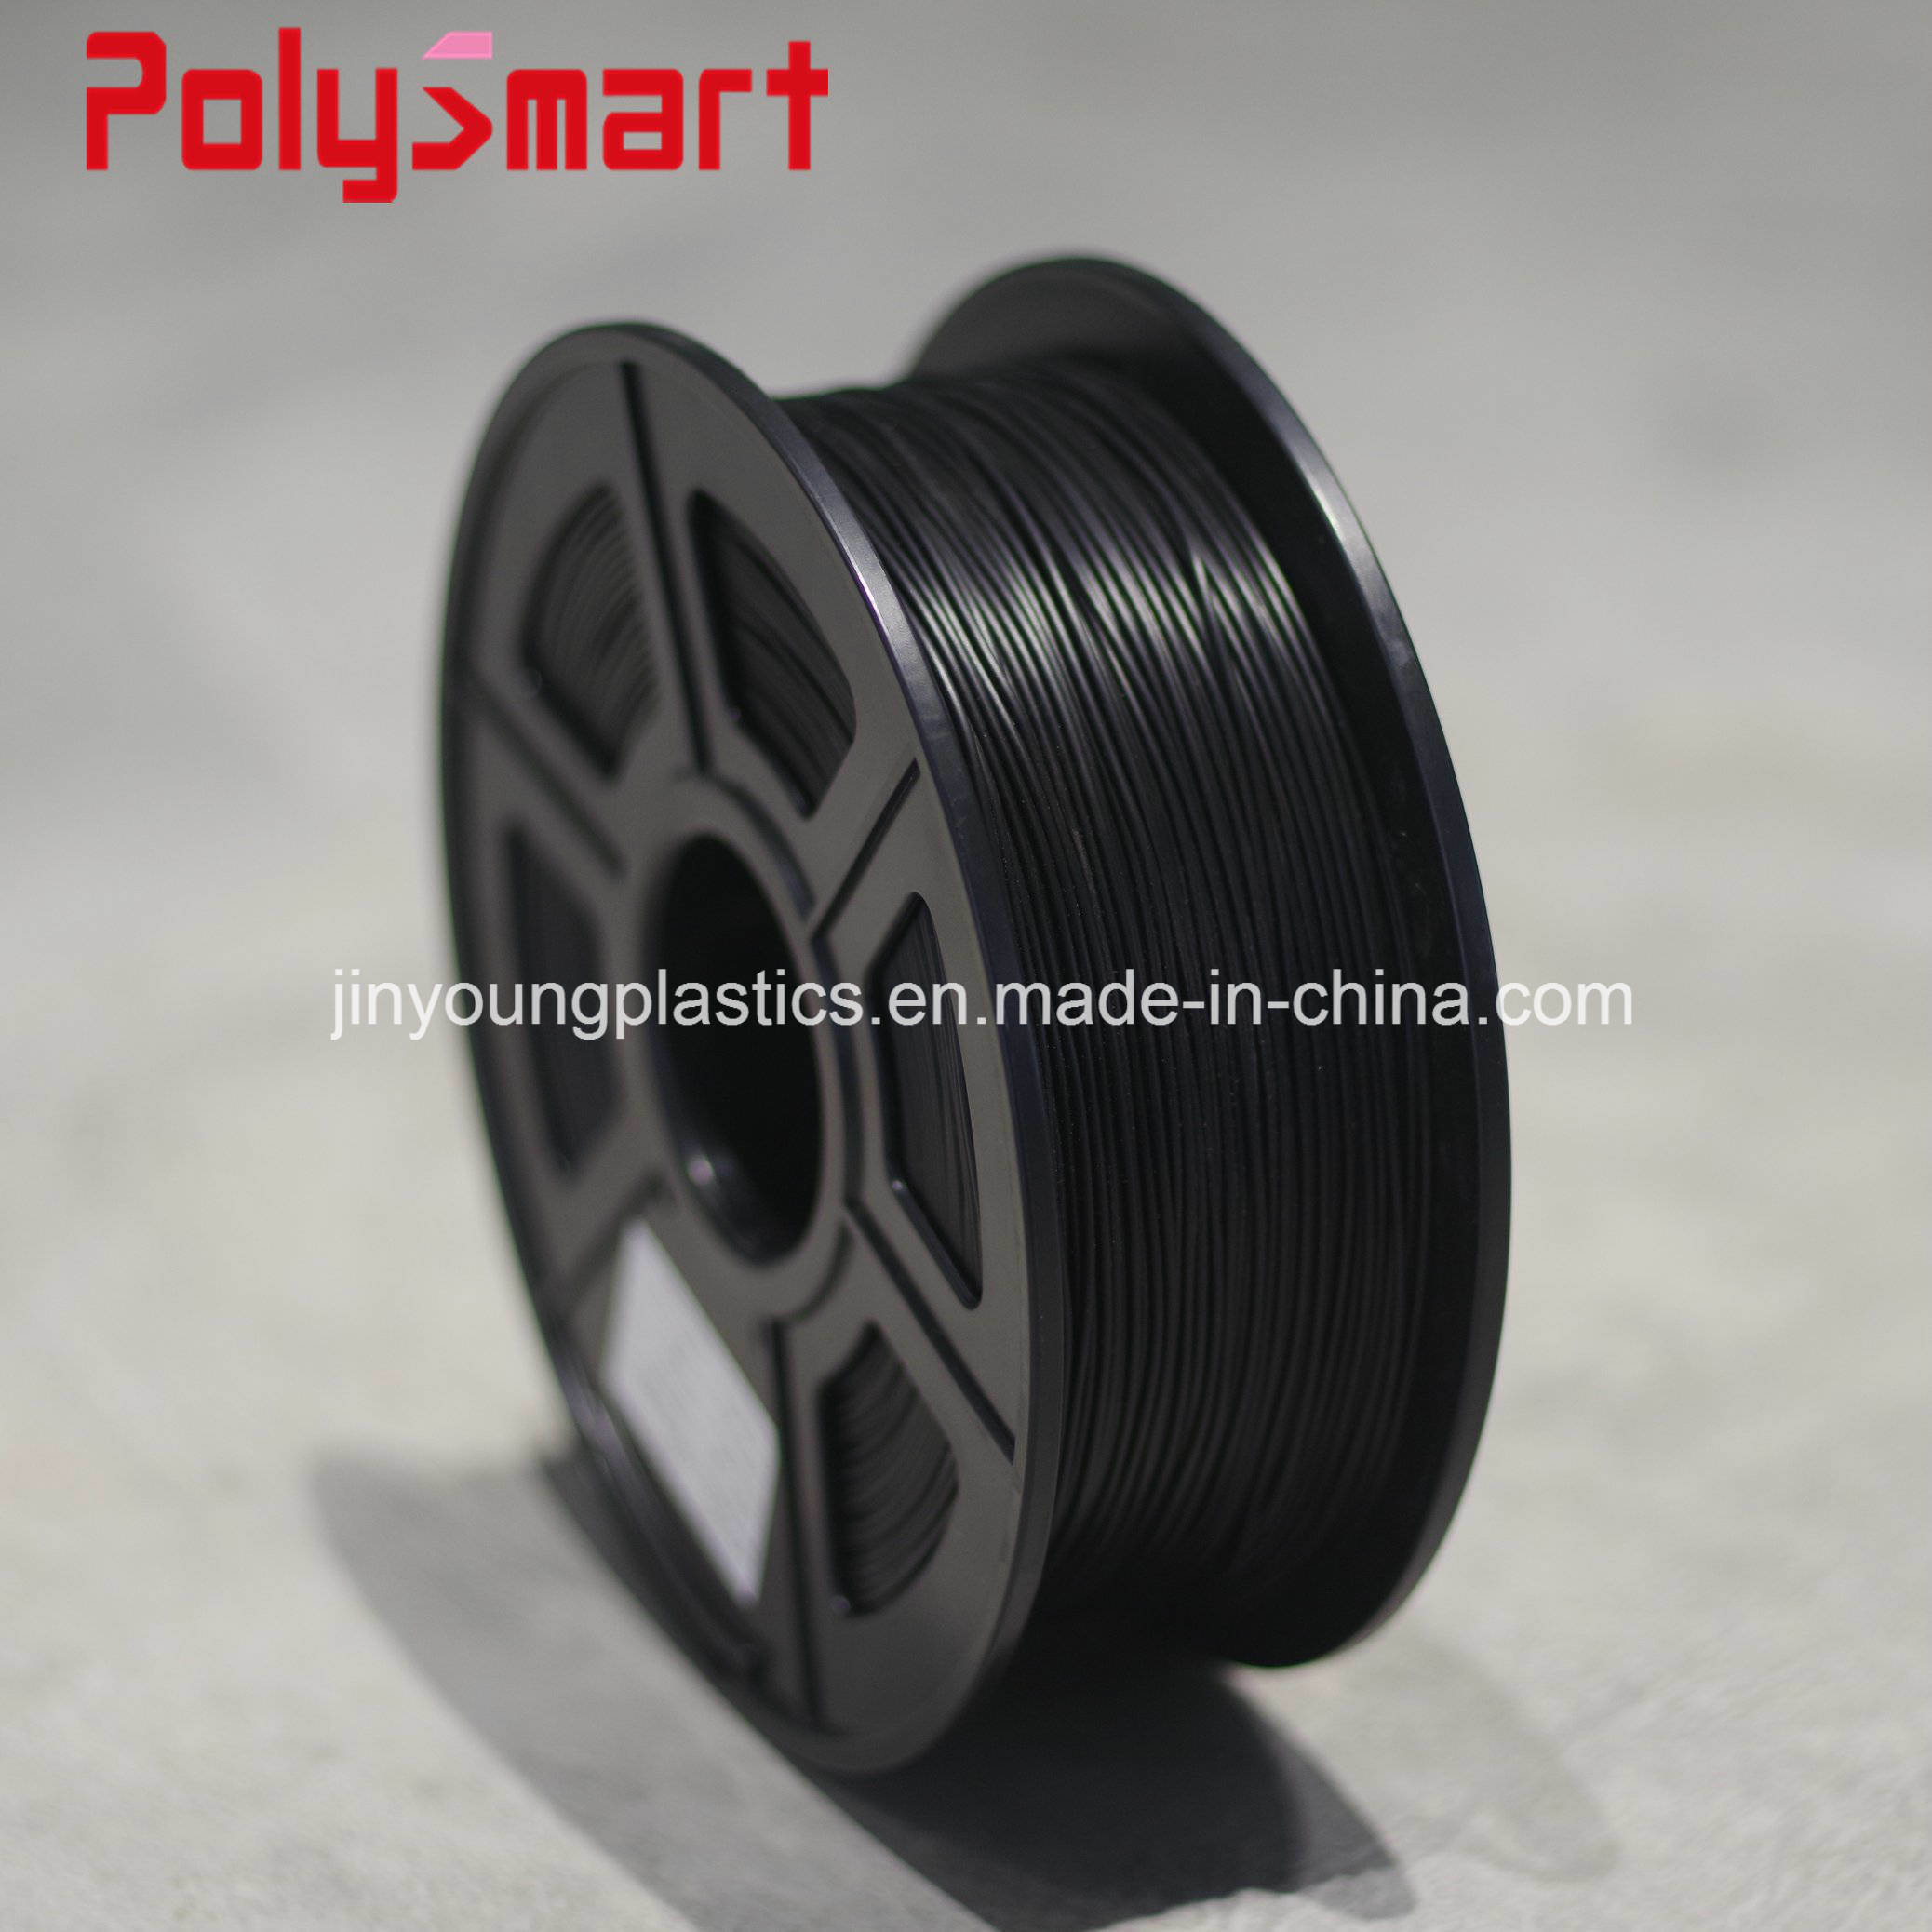 Wholesale Price Filament ABS PLA for 3D Printer